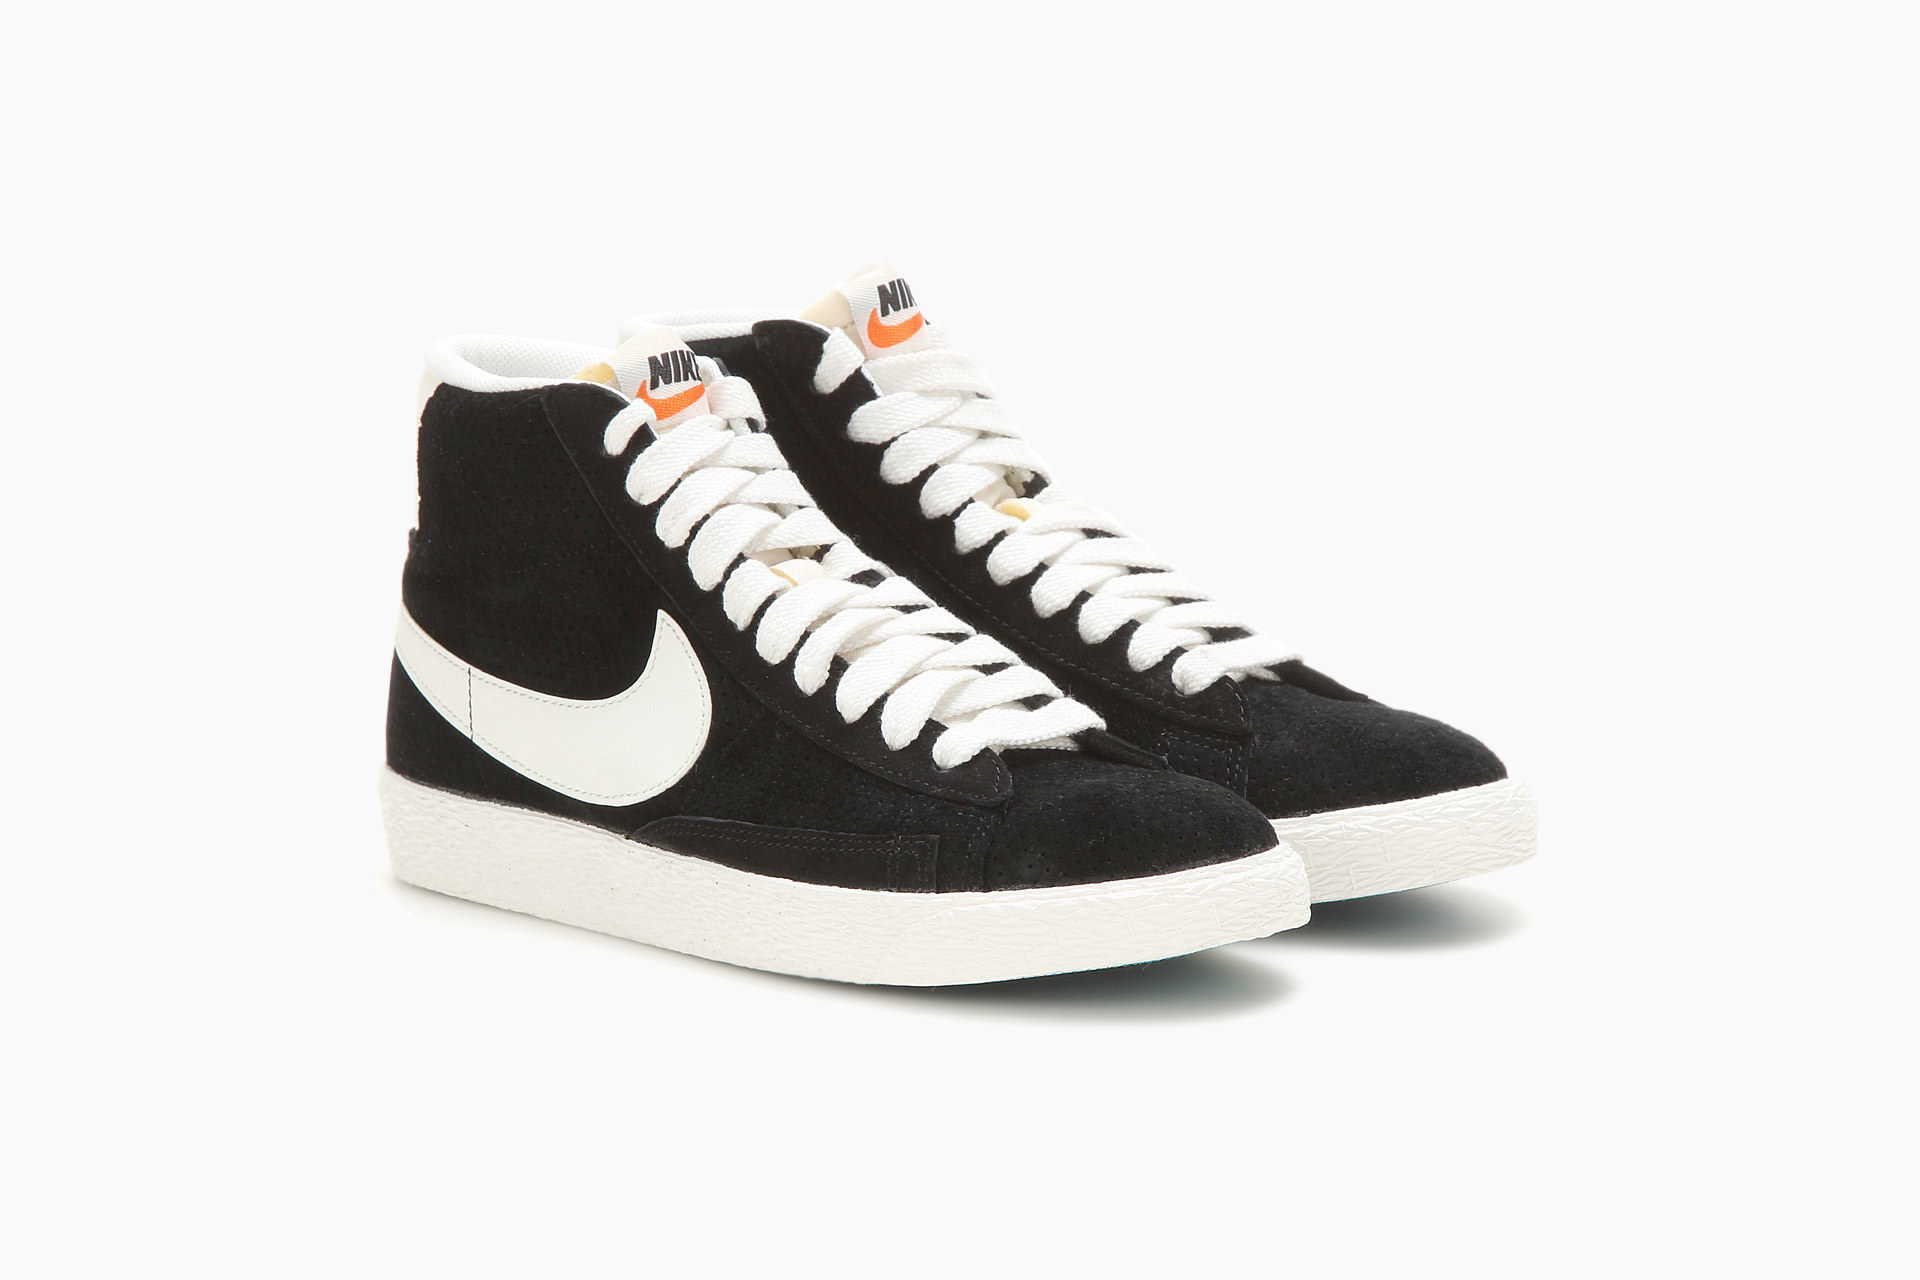 9a1cfbb8cab8b Buy nike blazer mid vintage baby   up to 60% Discounts